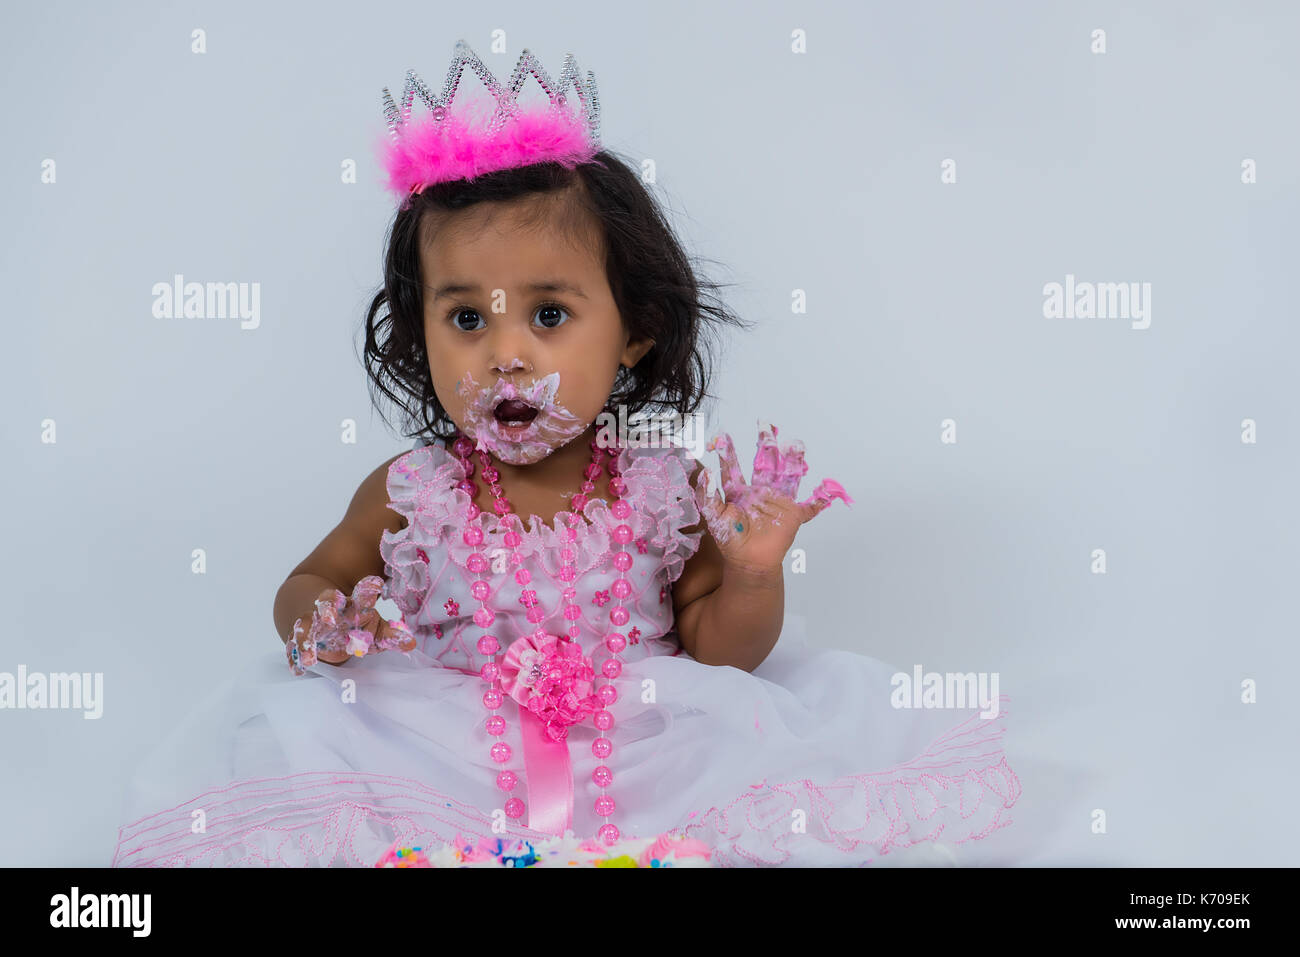 First Birthday Cake Smash Stock Photos First Birthday Cake Smash